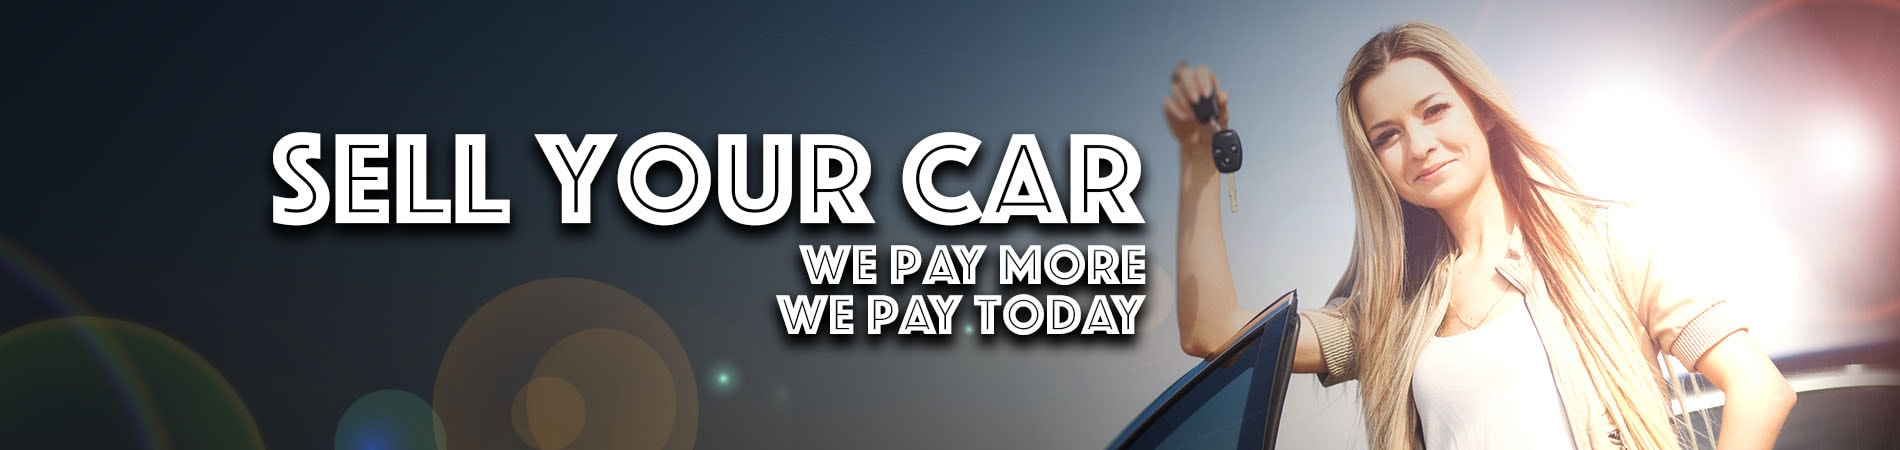 We'll Buy Your Vehicle at Seay Motors | Mayfield, KY ...